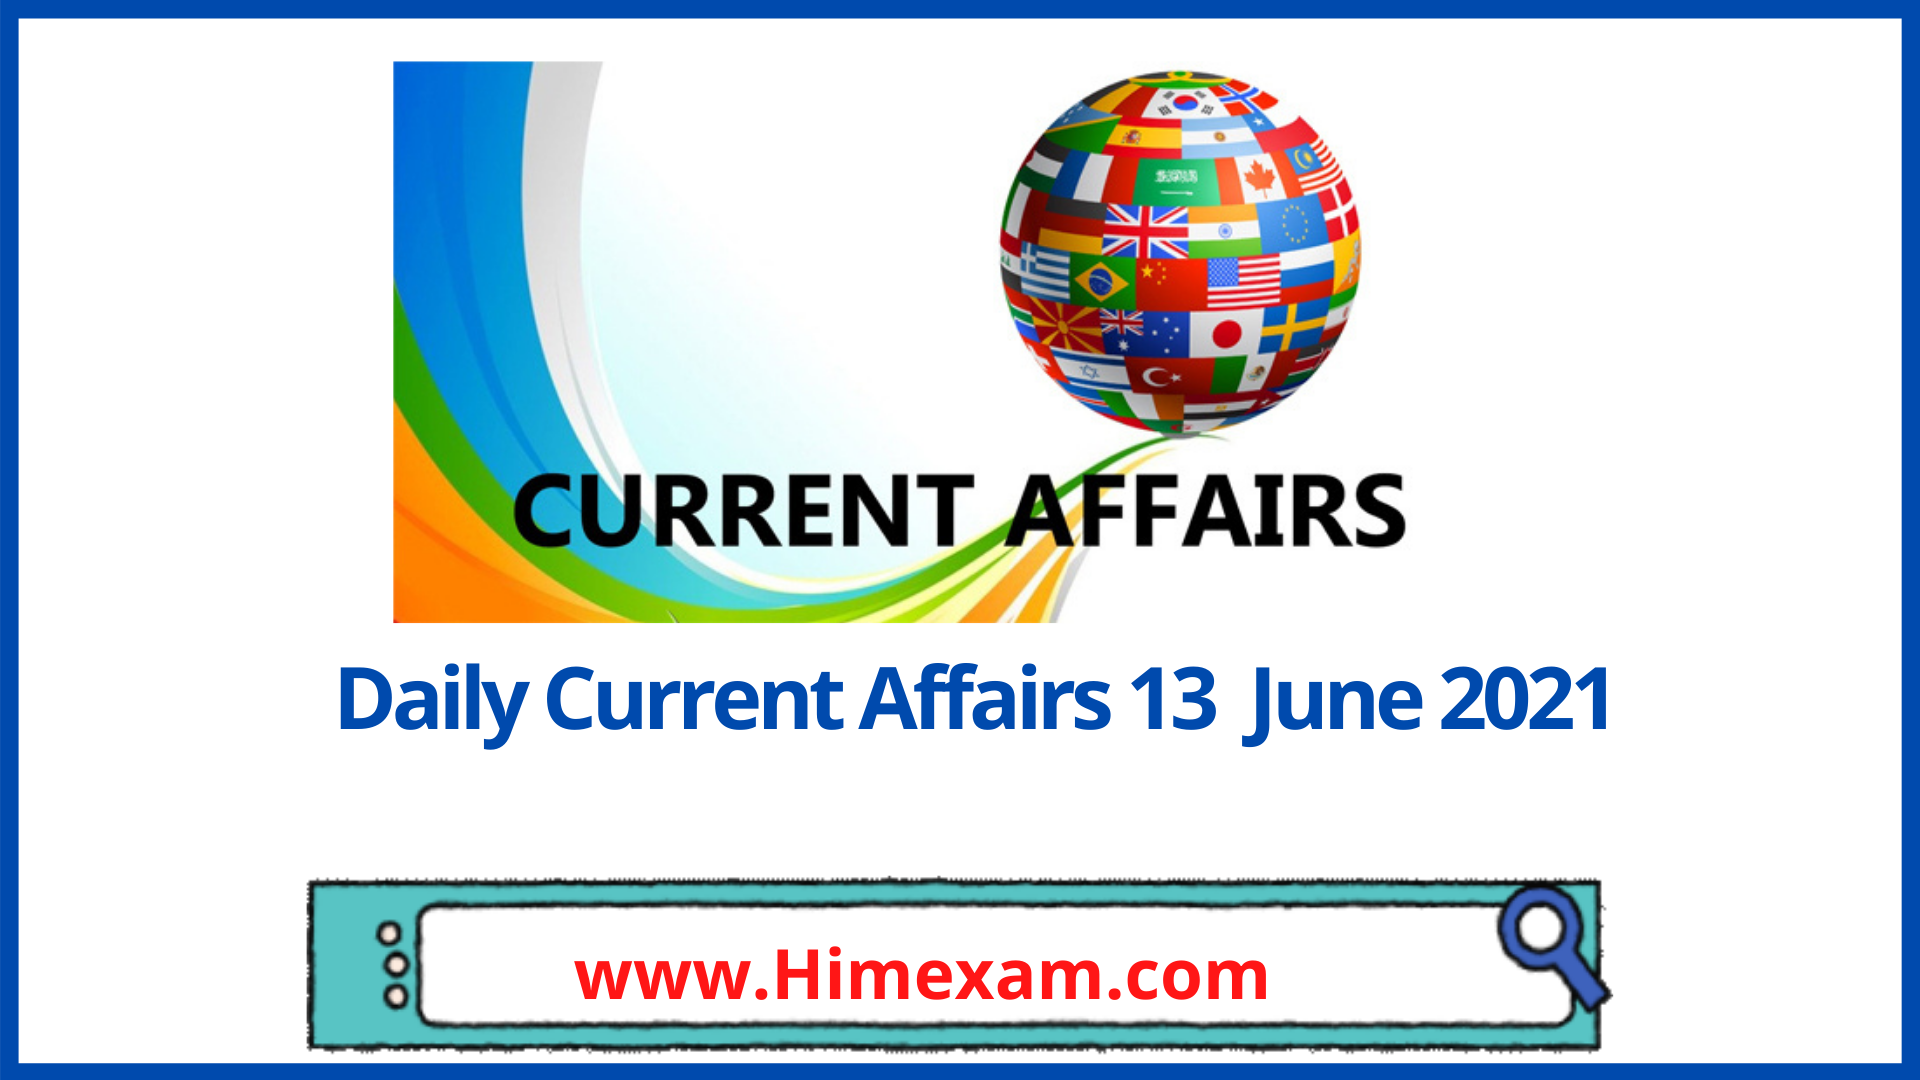 Daily Current Affairs 13 June 2021 In Hindi